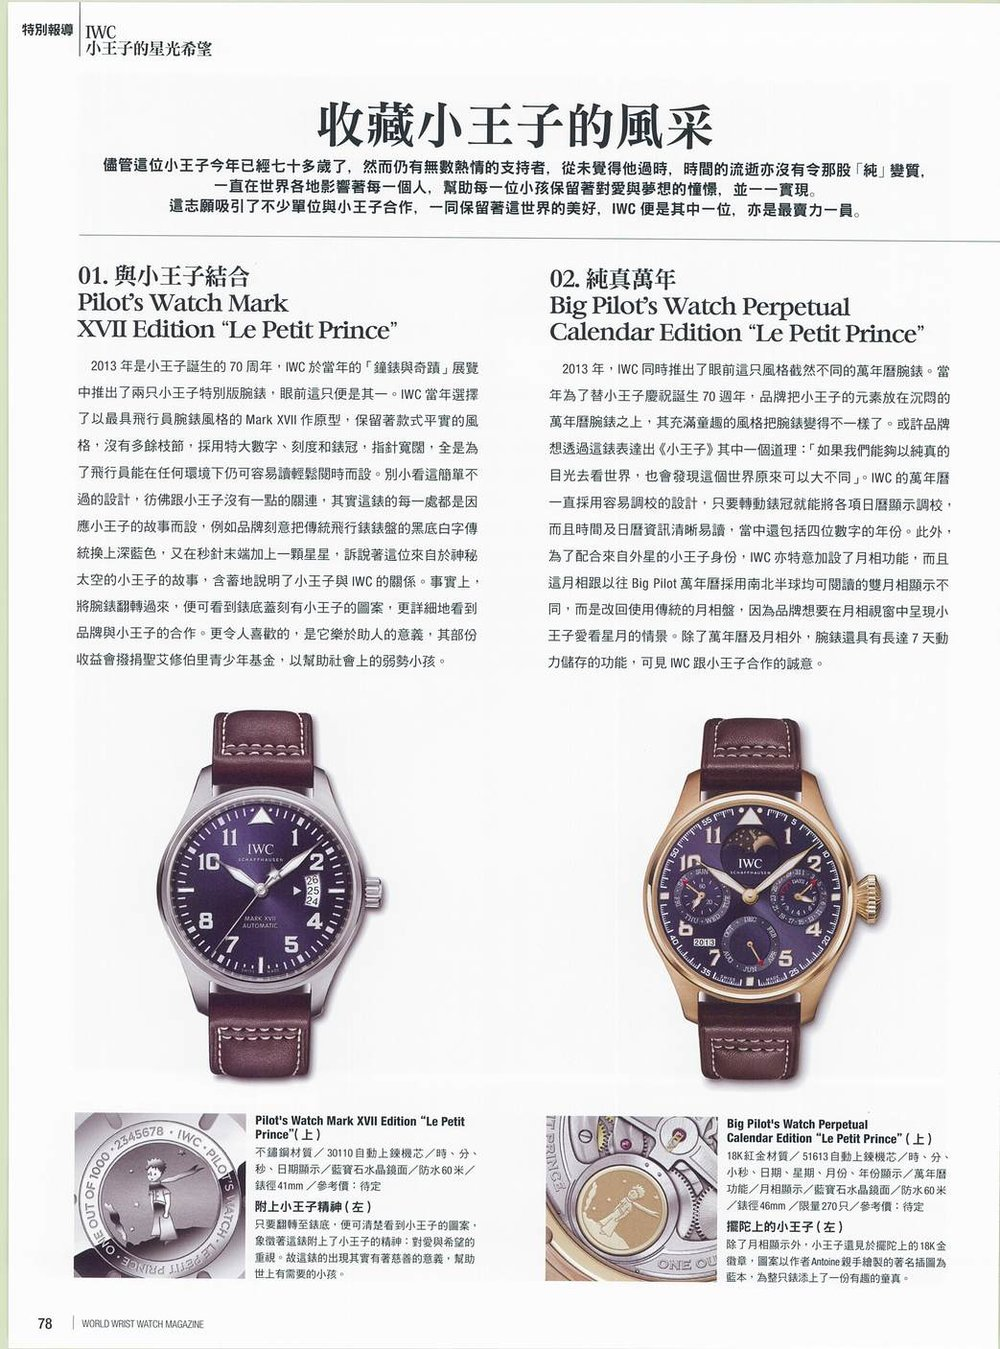 20160101_World Wrist Watch Magazine_P074-081_5_201601019987929.JPG